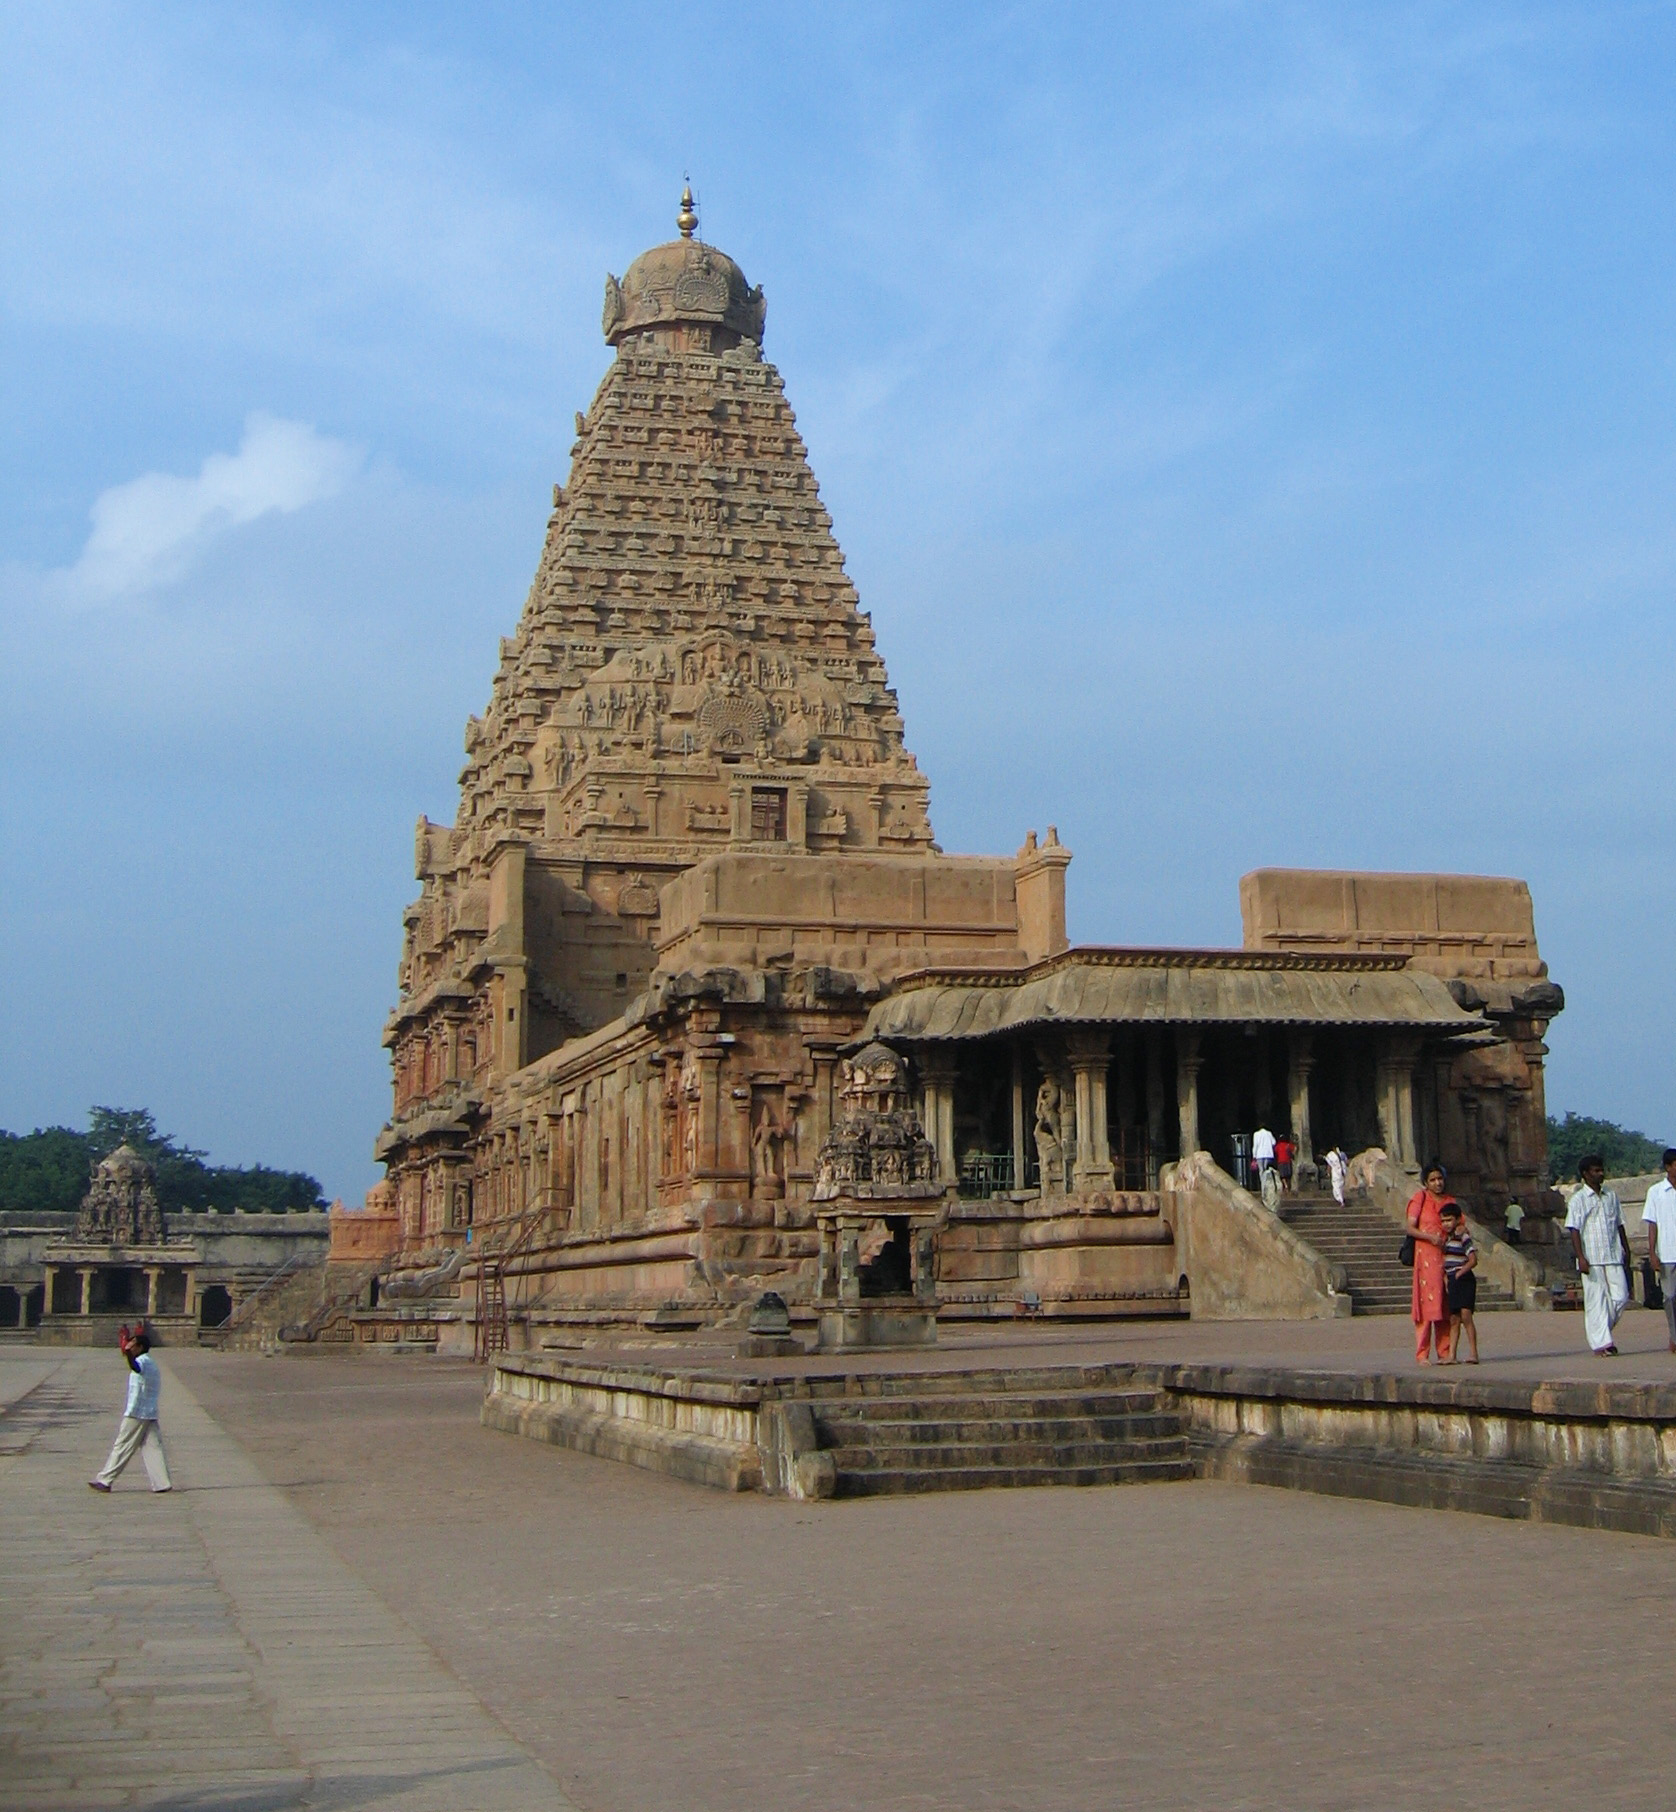 brihadisvara temple An 11th century chola hindu temple and unesco world heritage site.